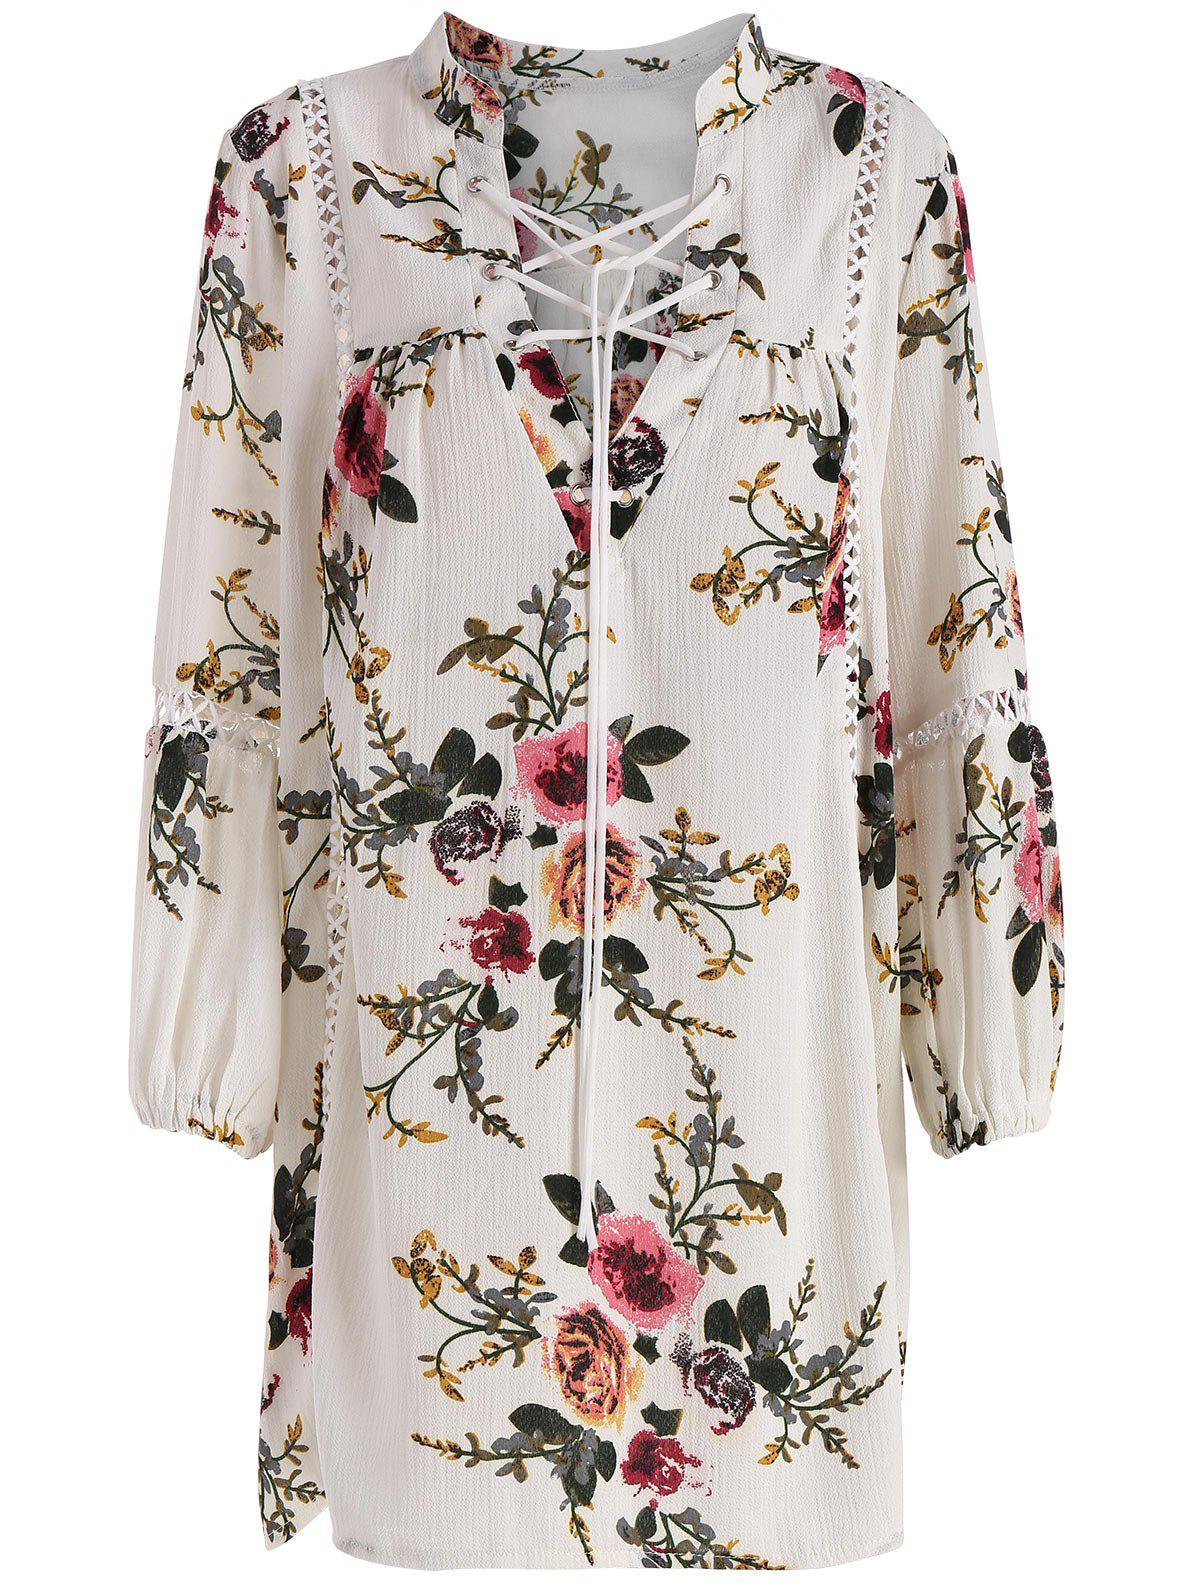 Floral Plus Size Lace Up Hollow Out TopWOMEN<br><br>Size: 3XL; Color: CRYSTAL CREAM; Material: Polyester; Shirt Length: Long; Sleeve Length: Full; Collar: V-Neck; Style: Fashion; Season: Fall,Spring; Pattern Type: Floral; Weight: 0.3400kg; Package Contents: 1 x Top;